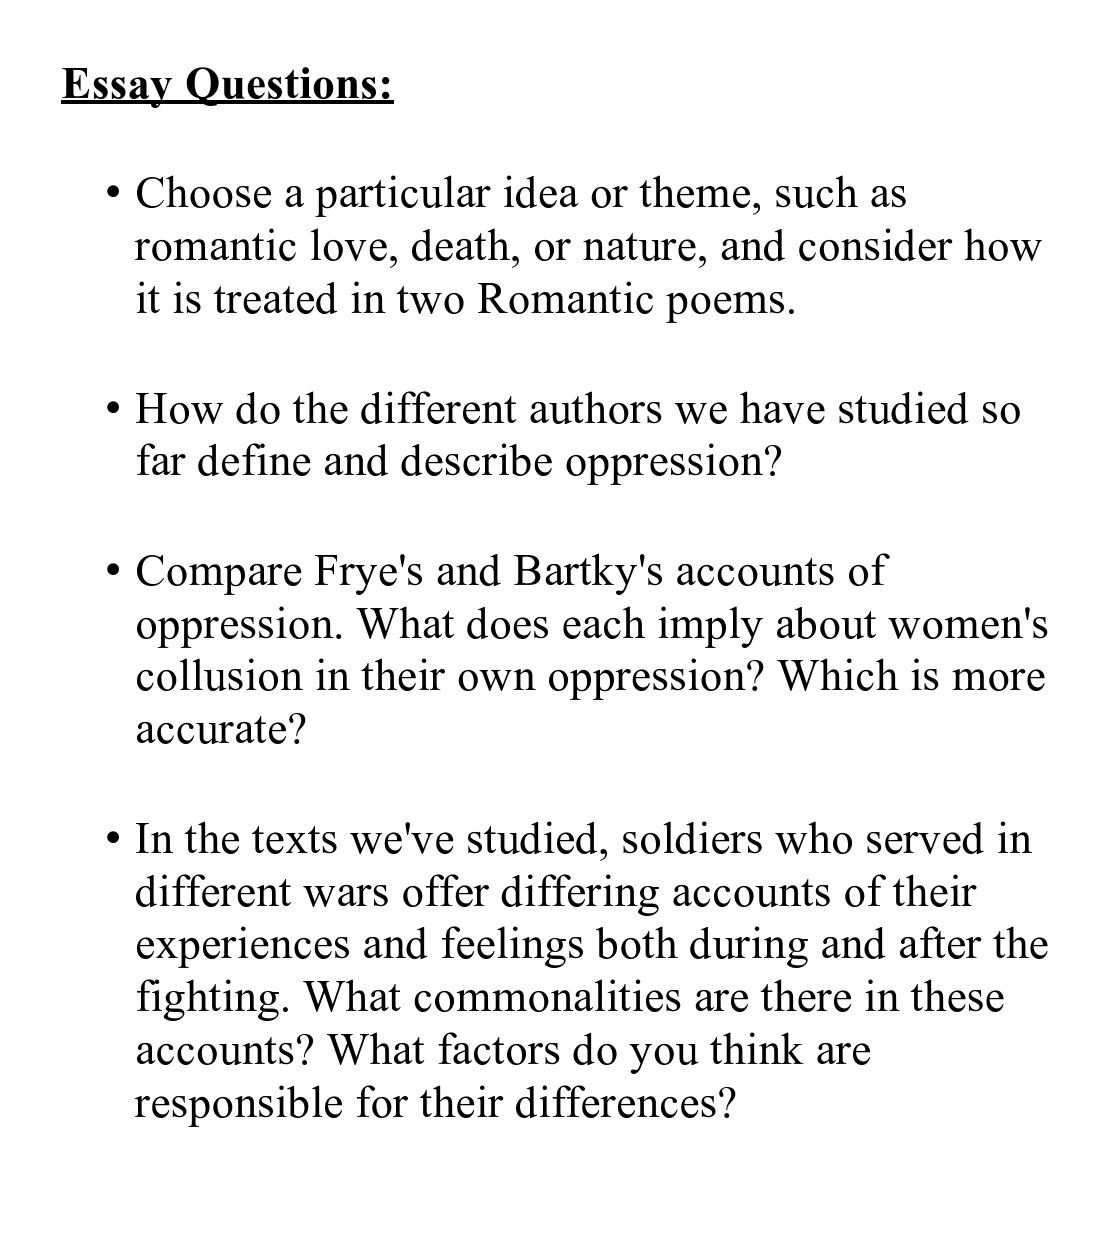 007 Essay Example Prompts Questions Best For Middle School Topics Frankenstein By Mary Shelley College Full